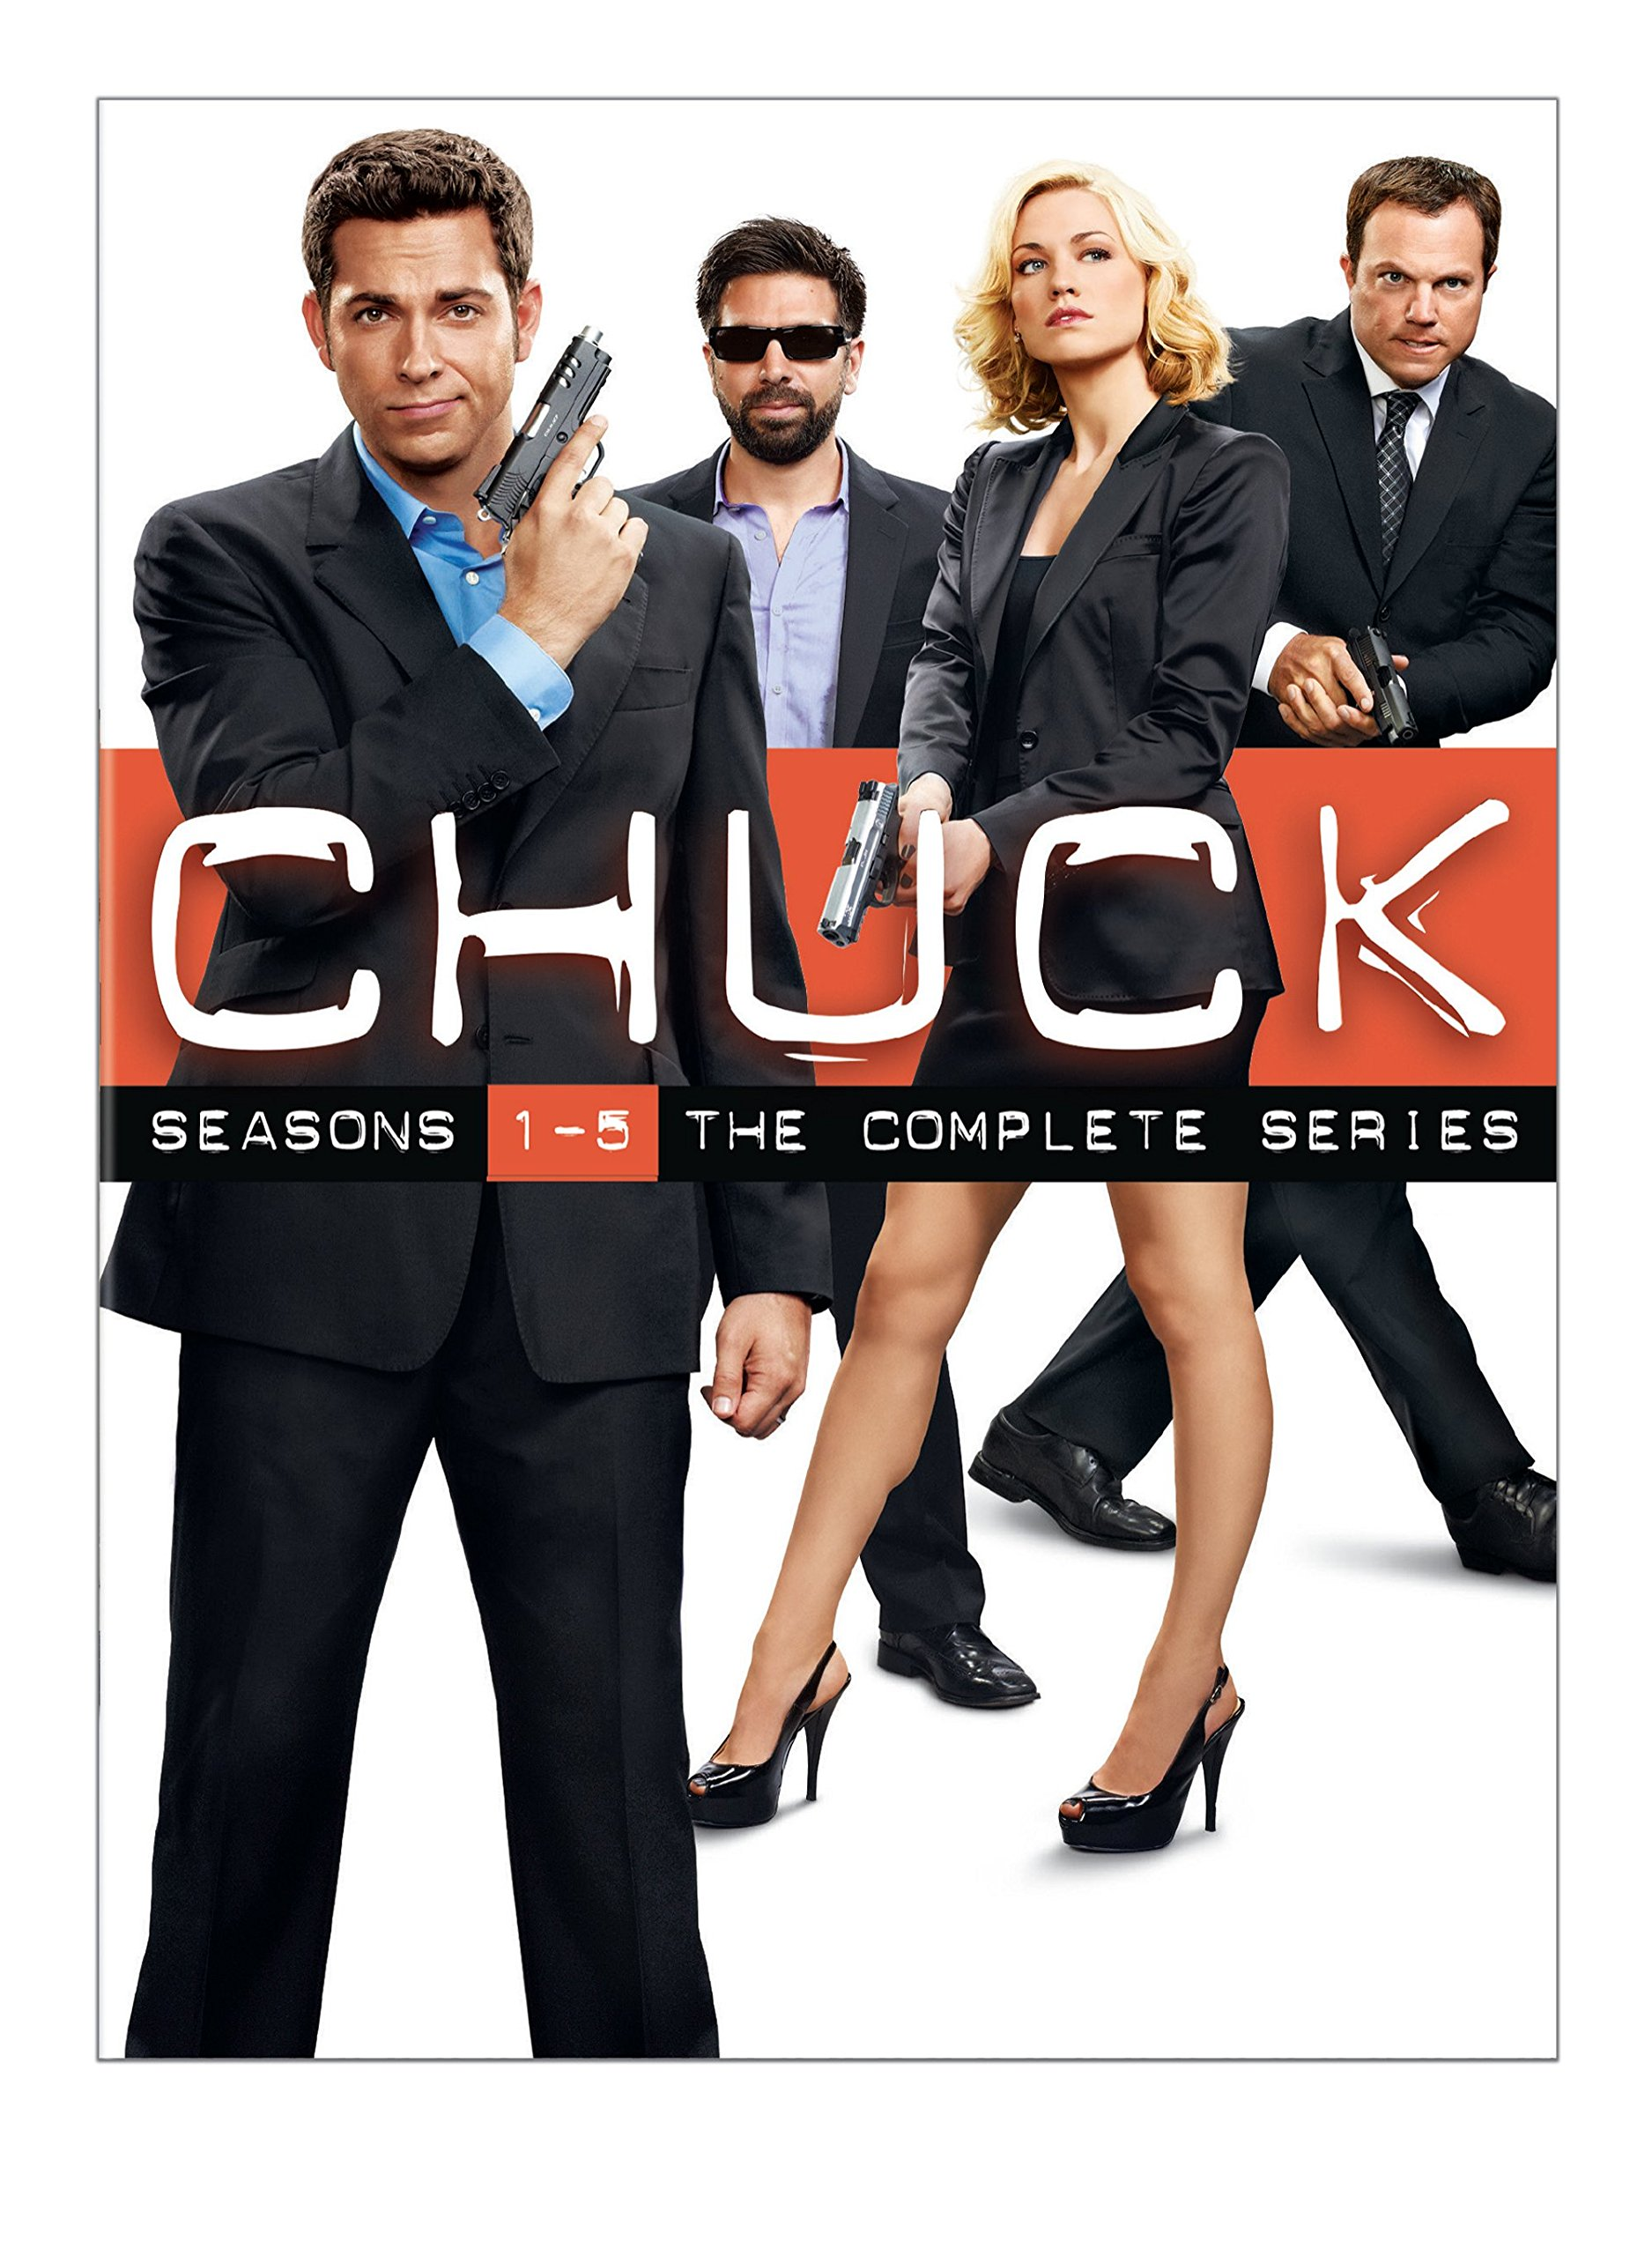 Chuck: The Complete Series by Warner Manufacturing